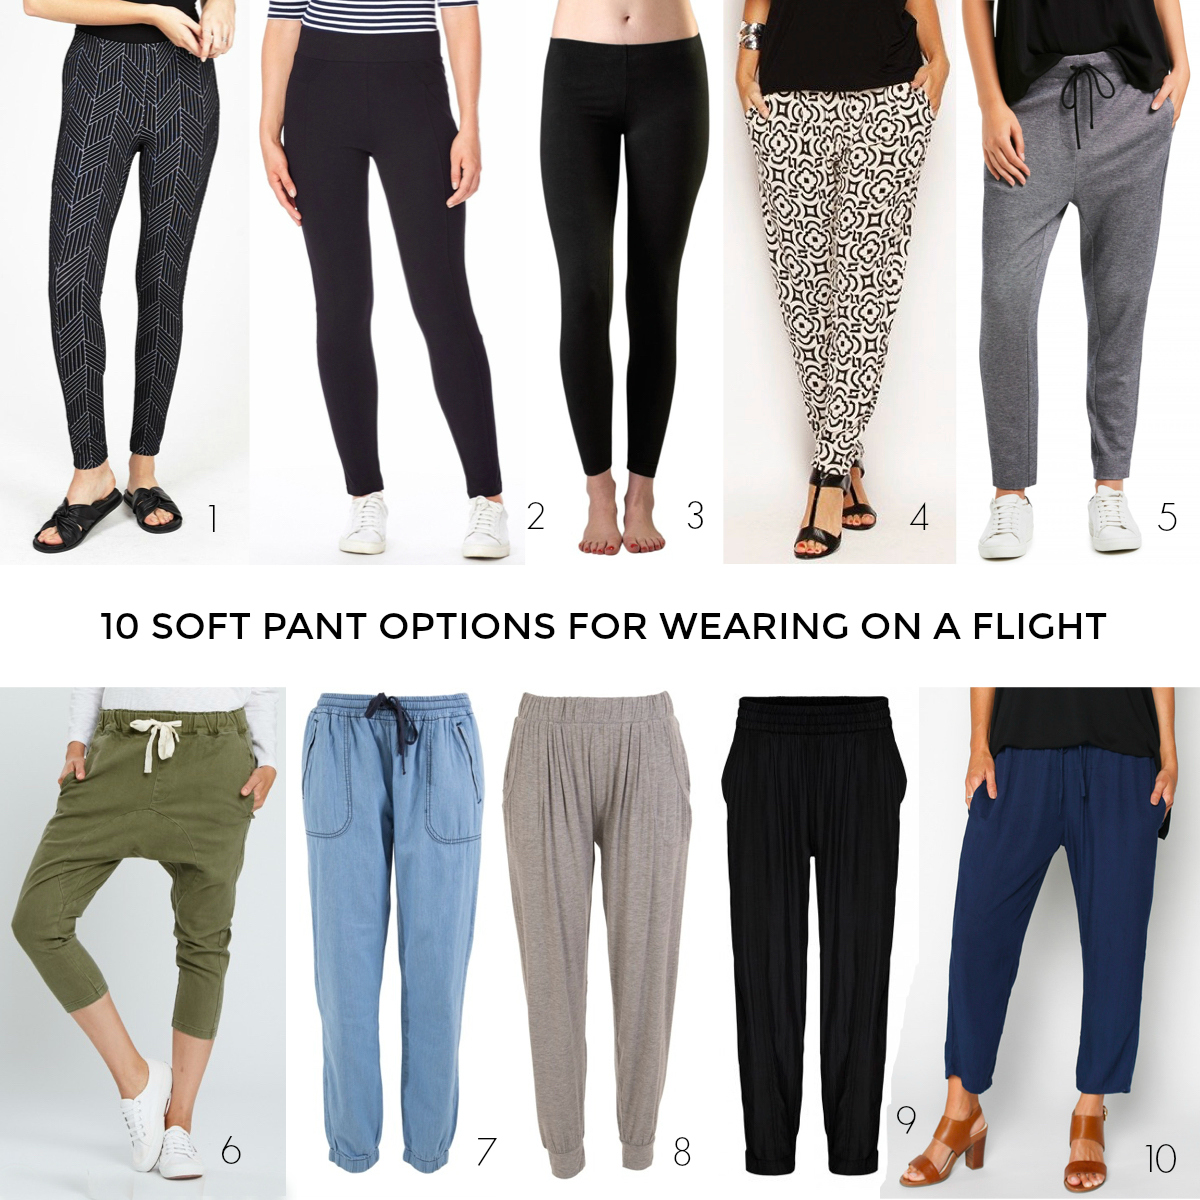 0 soft pant options for wearing on a flight when travelling overseas | Styling You